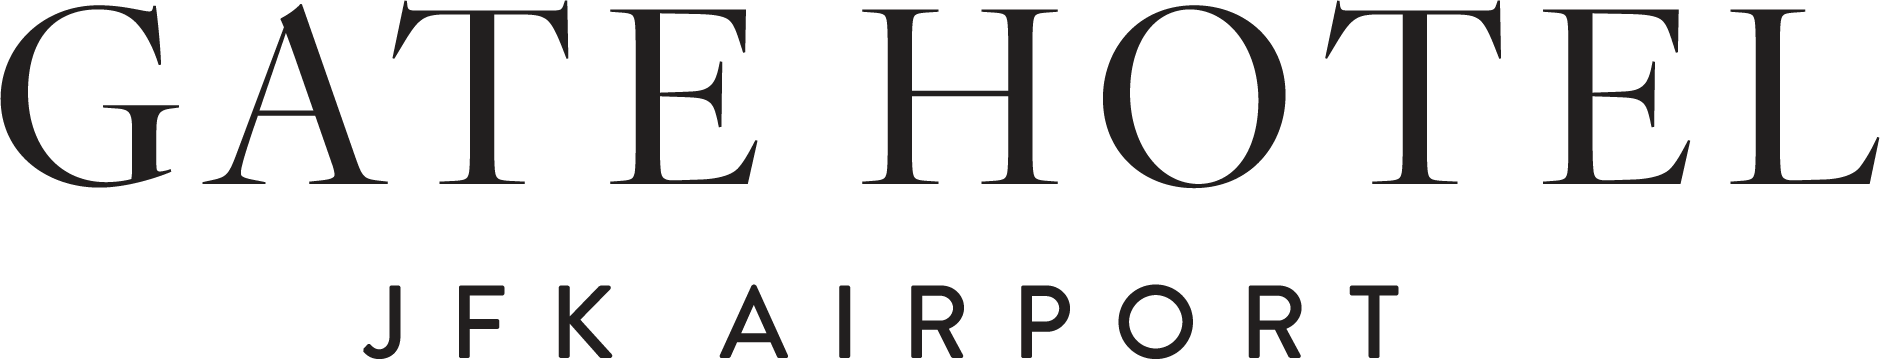 Logo for Gate Hotel JFK Airport